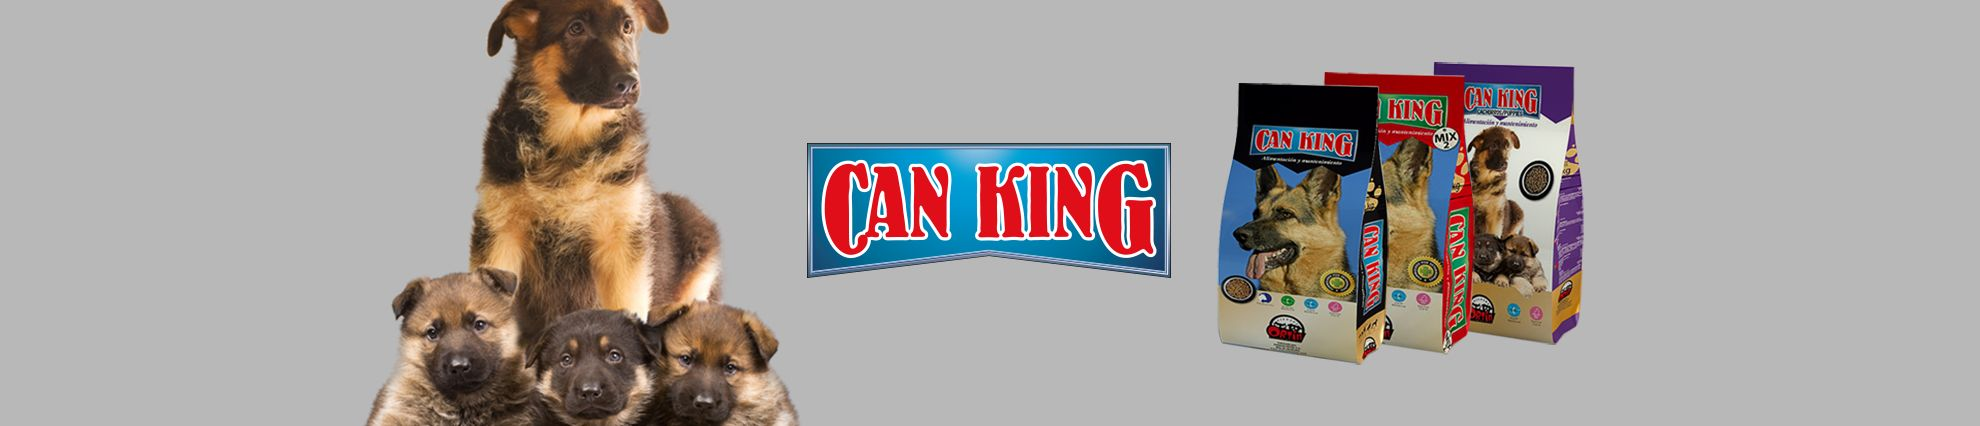 Can King